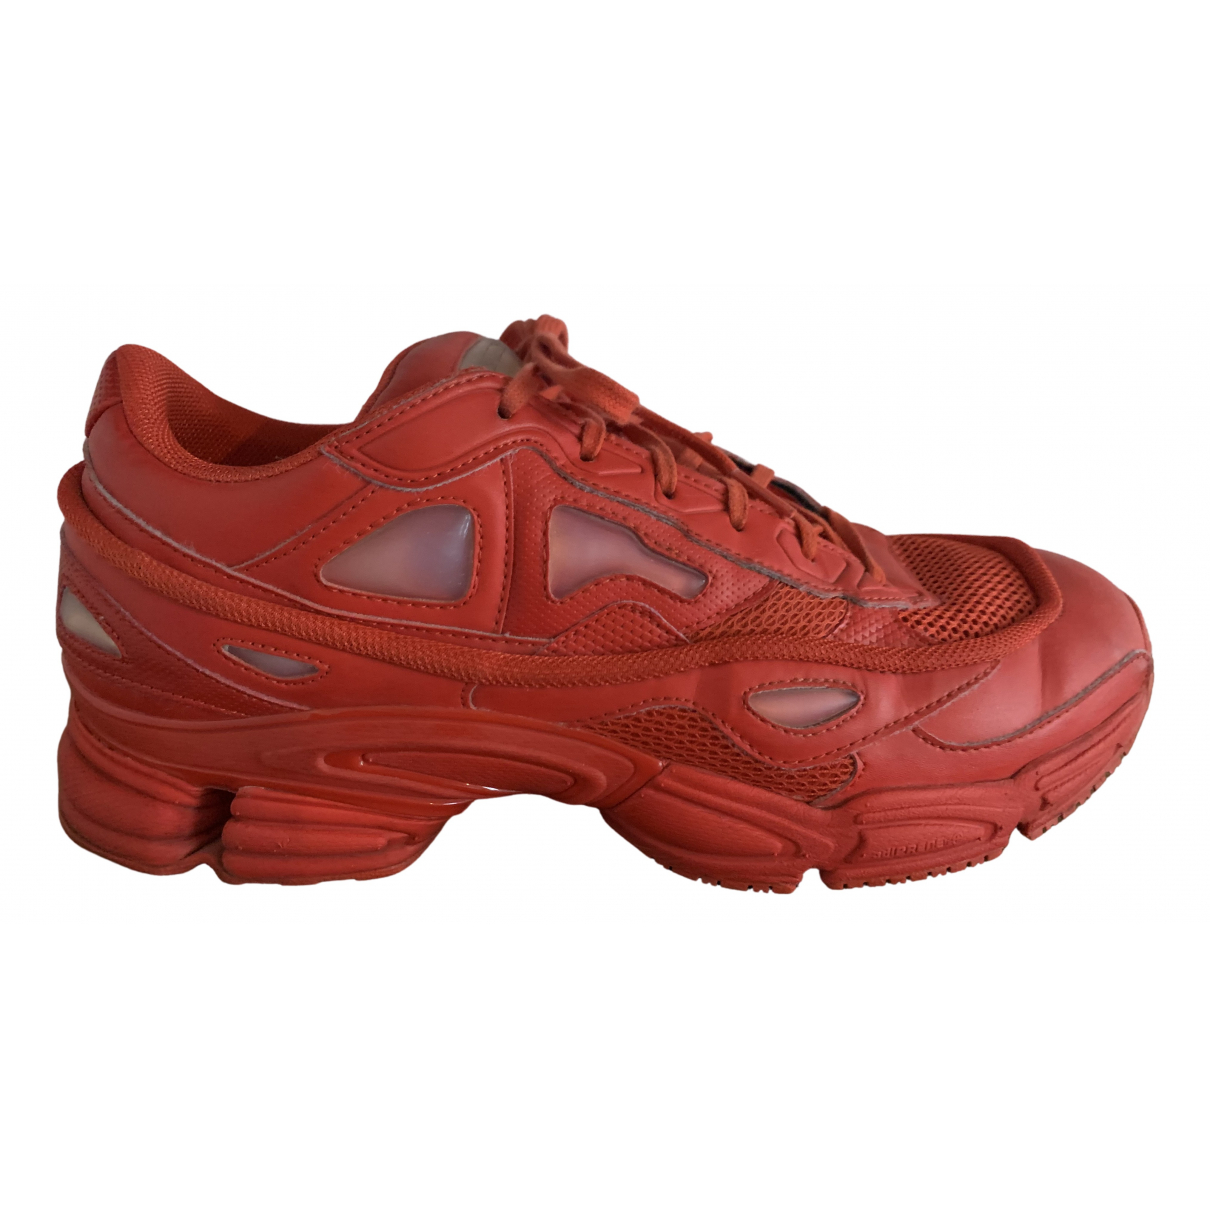 Adidas X Raf Simons Ozweego 2 Red Leather Trainers for Men 11 UK